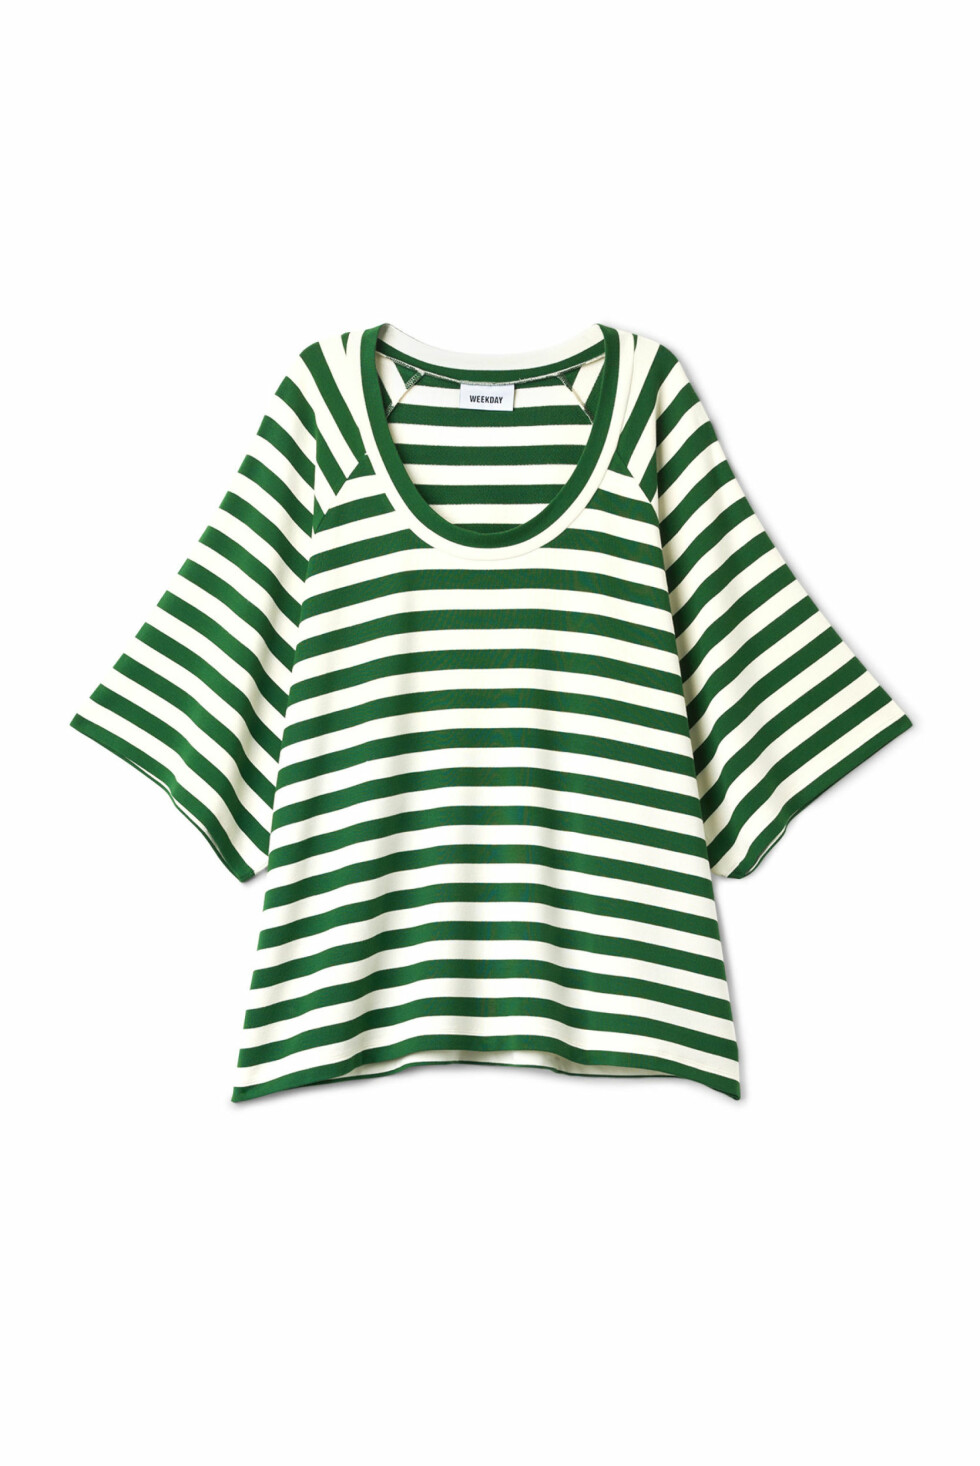 <strong>T-skjorte fra Weekday |350,-|https:</strong>//www.weekday.com/en_sek/women/categories/tops/_jcr_content/subdepartmentPar/productlisting.products/product.conduct-t-shirt-dark-green.0576728003.html